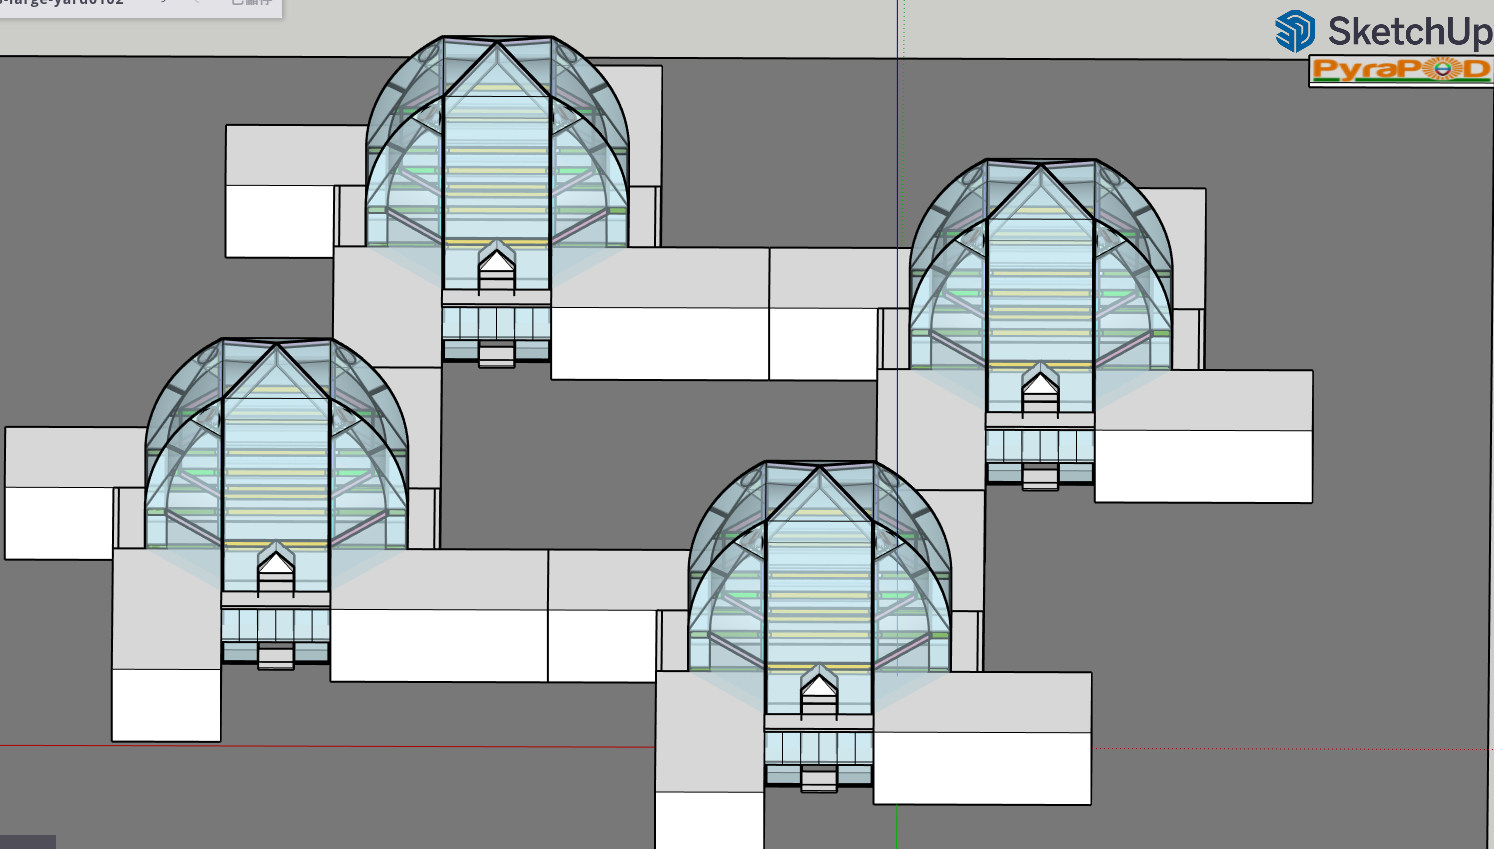 Four of an enlarged PyraPOD8-LifePOD compex form a court yard for comminity living